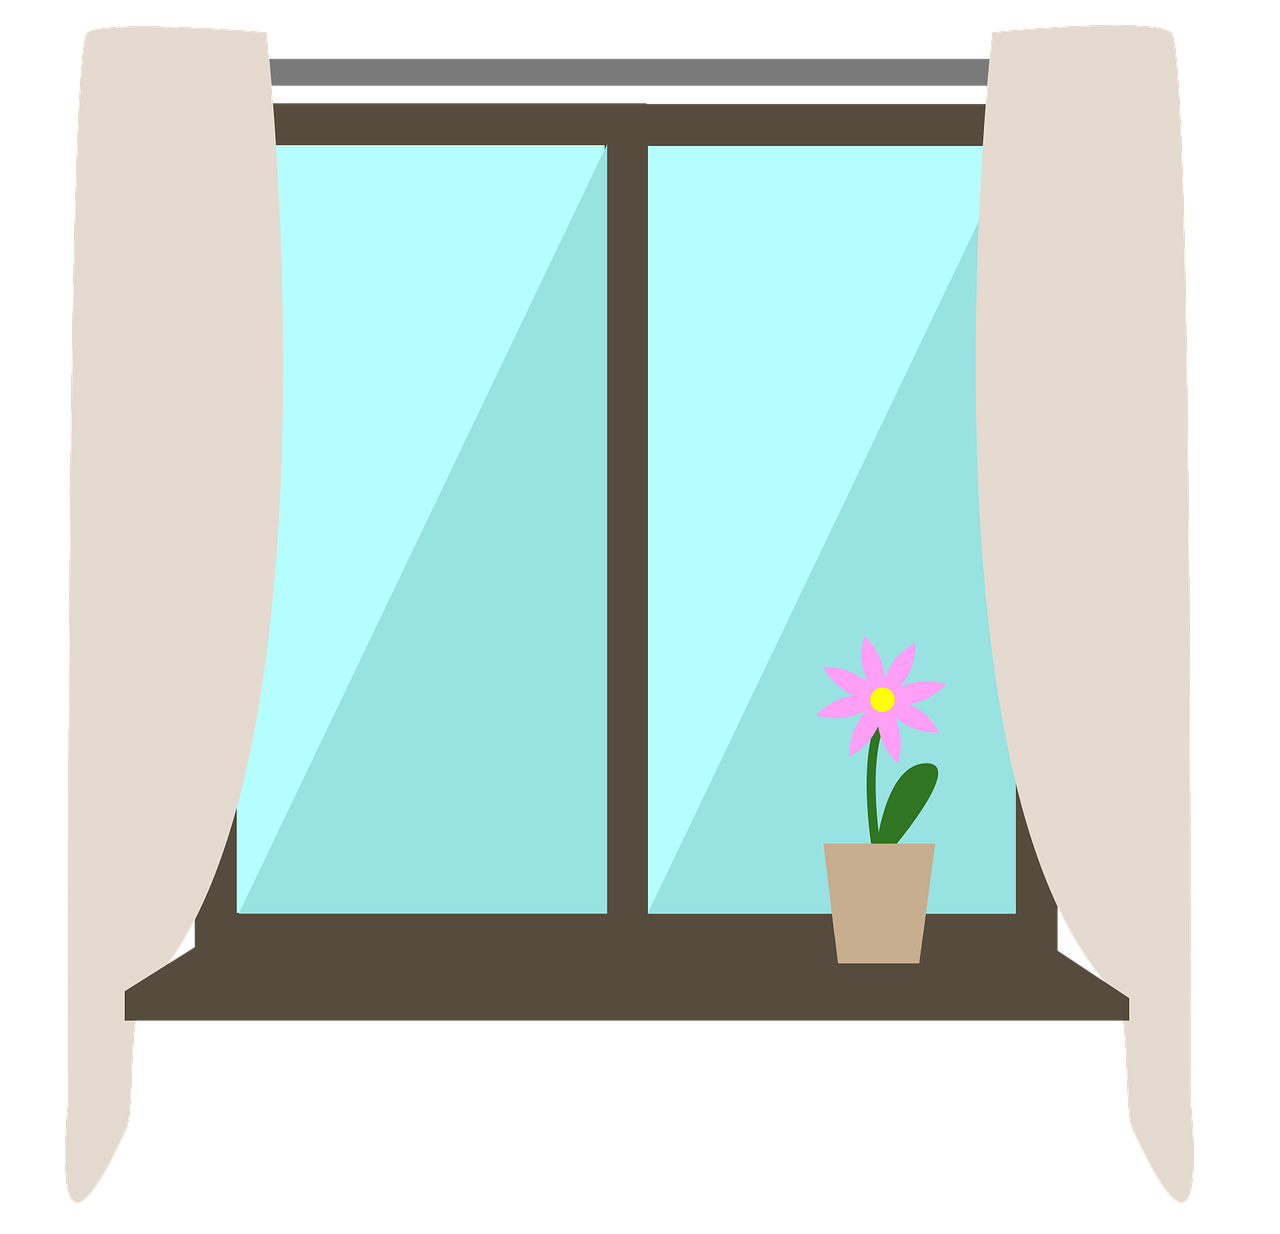 A window illustration to represent how Atlanta visual media company SkyCastle productions provides transparent pricing for websites and social media design